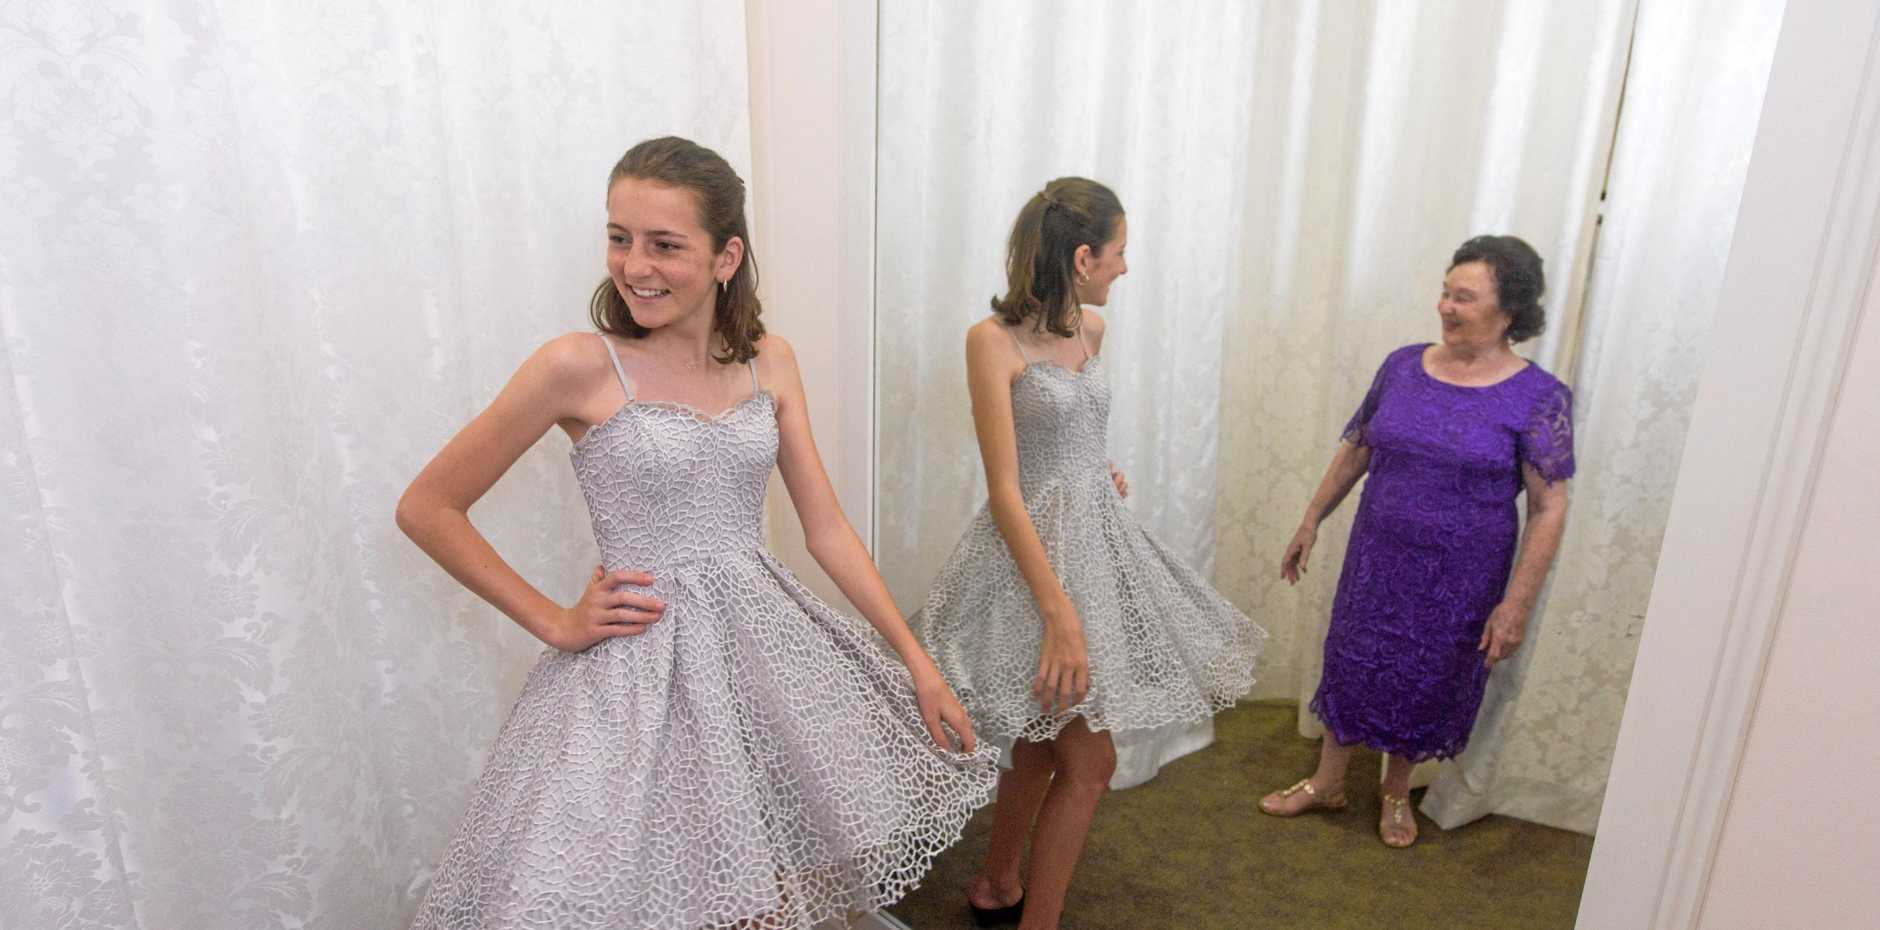 2017 Junior Jacaranda Queen Holly Blundell and 2017 Matron of Honour Patricia Hewitt try on some outfits at Lasting Impressions ahead of this week's Jacaranda Fashion Parade.